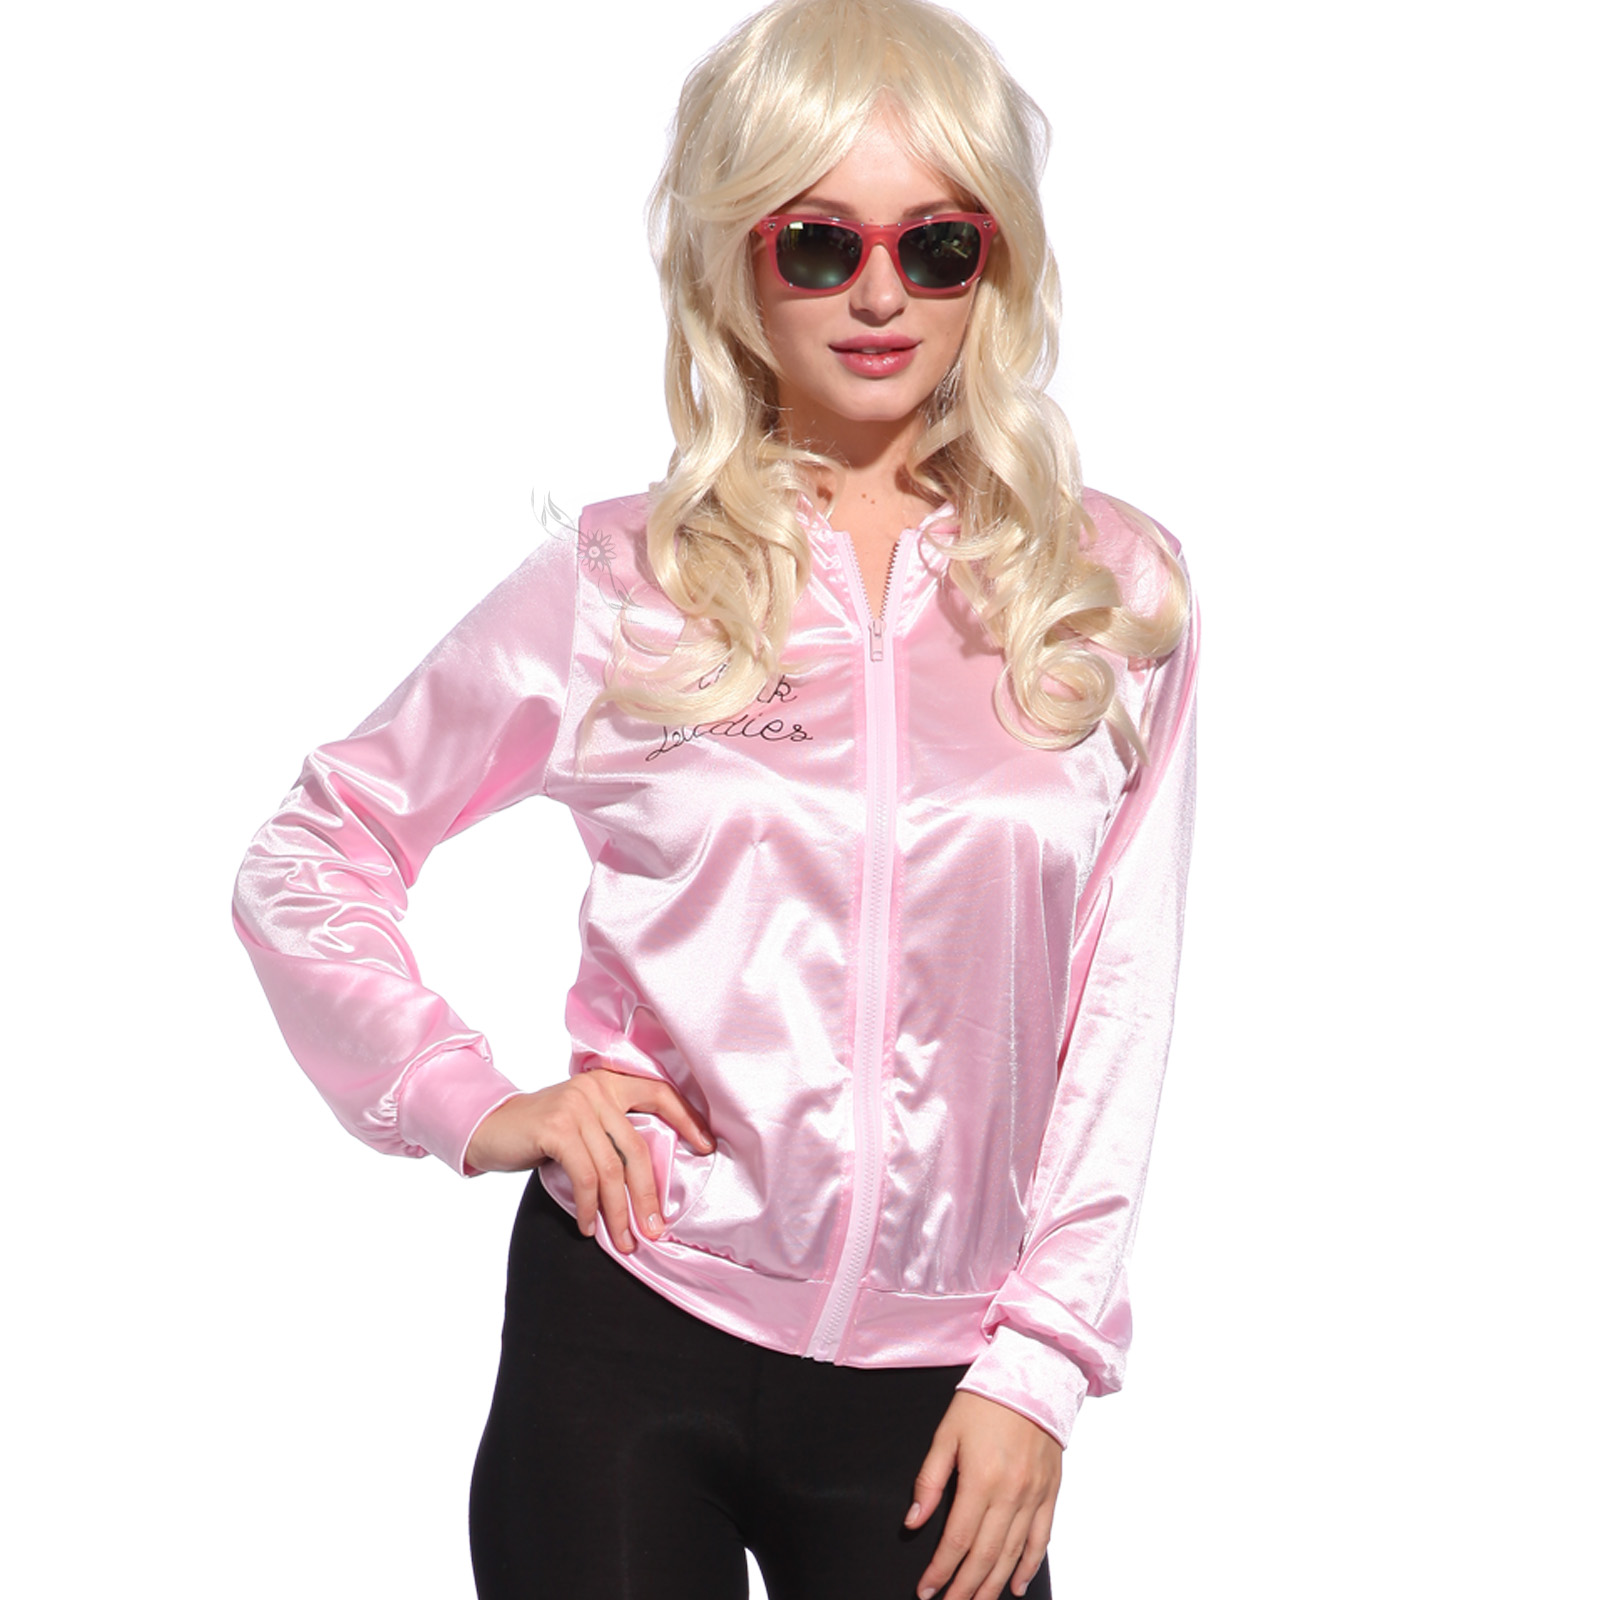 Retro 1950s Grease Pink Ladies Jacket Costume TShirt Party Fancy ...